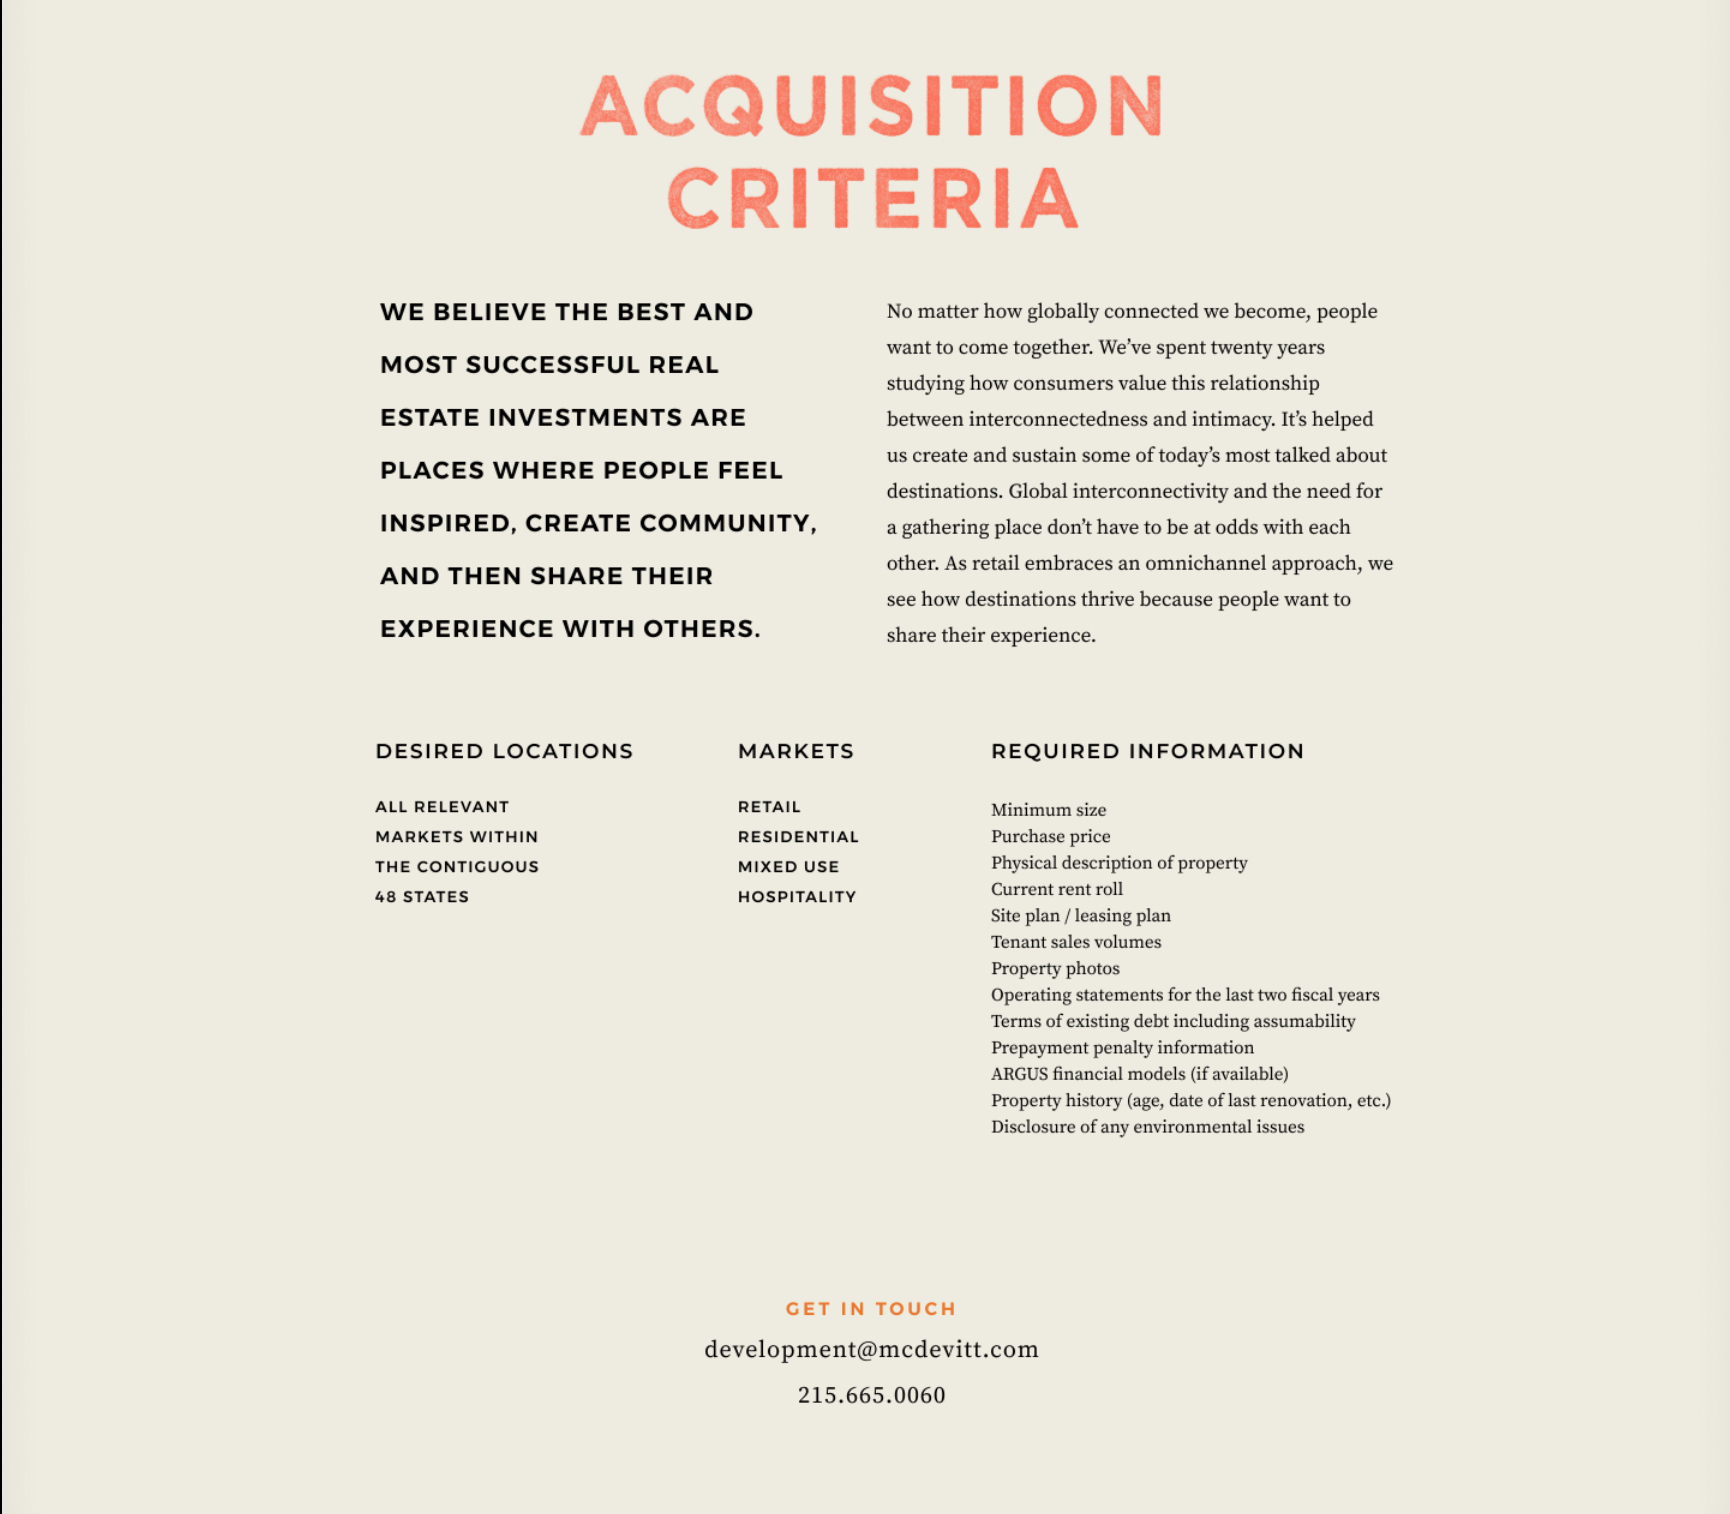 acquisition-criteria_png.png